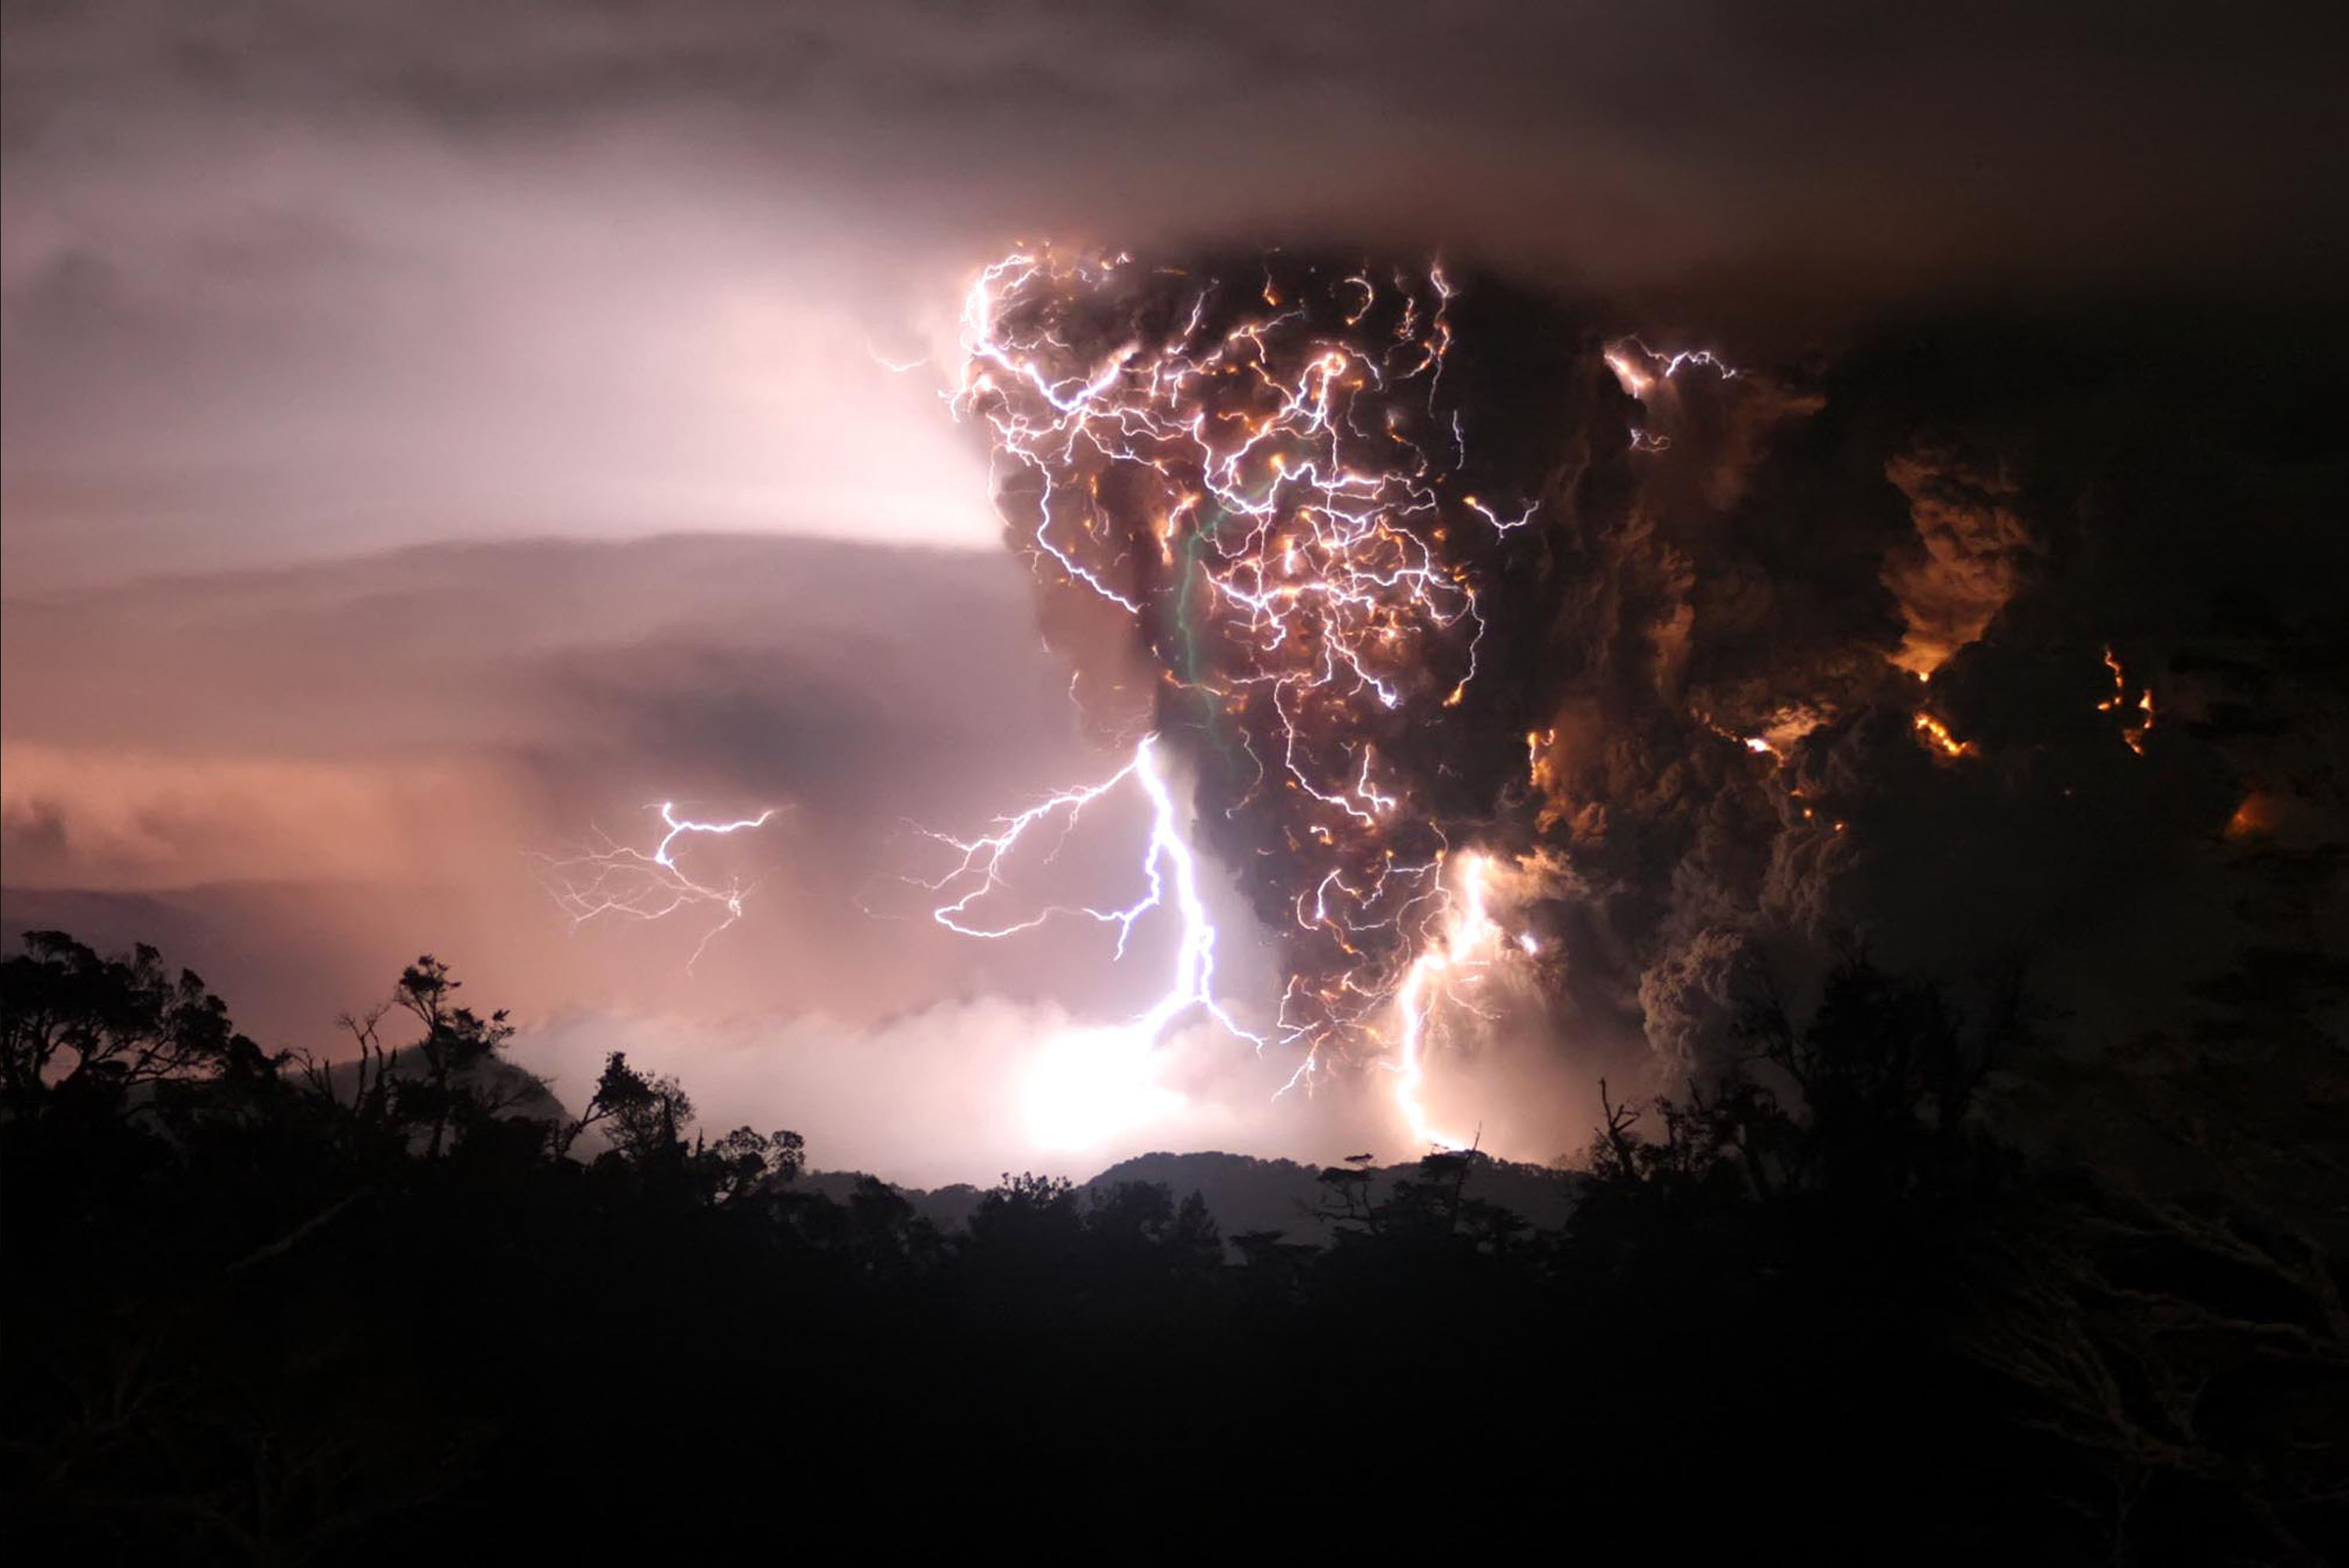 Photography - Lightning  - Volcano Chile - Volcano - Natural Catastrophe Wallpaper